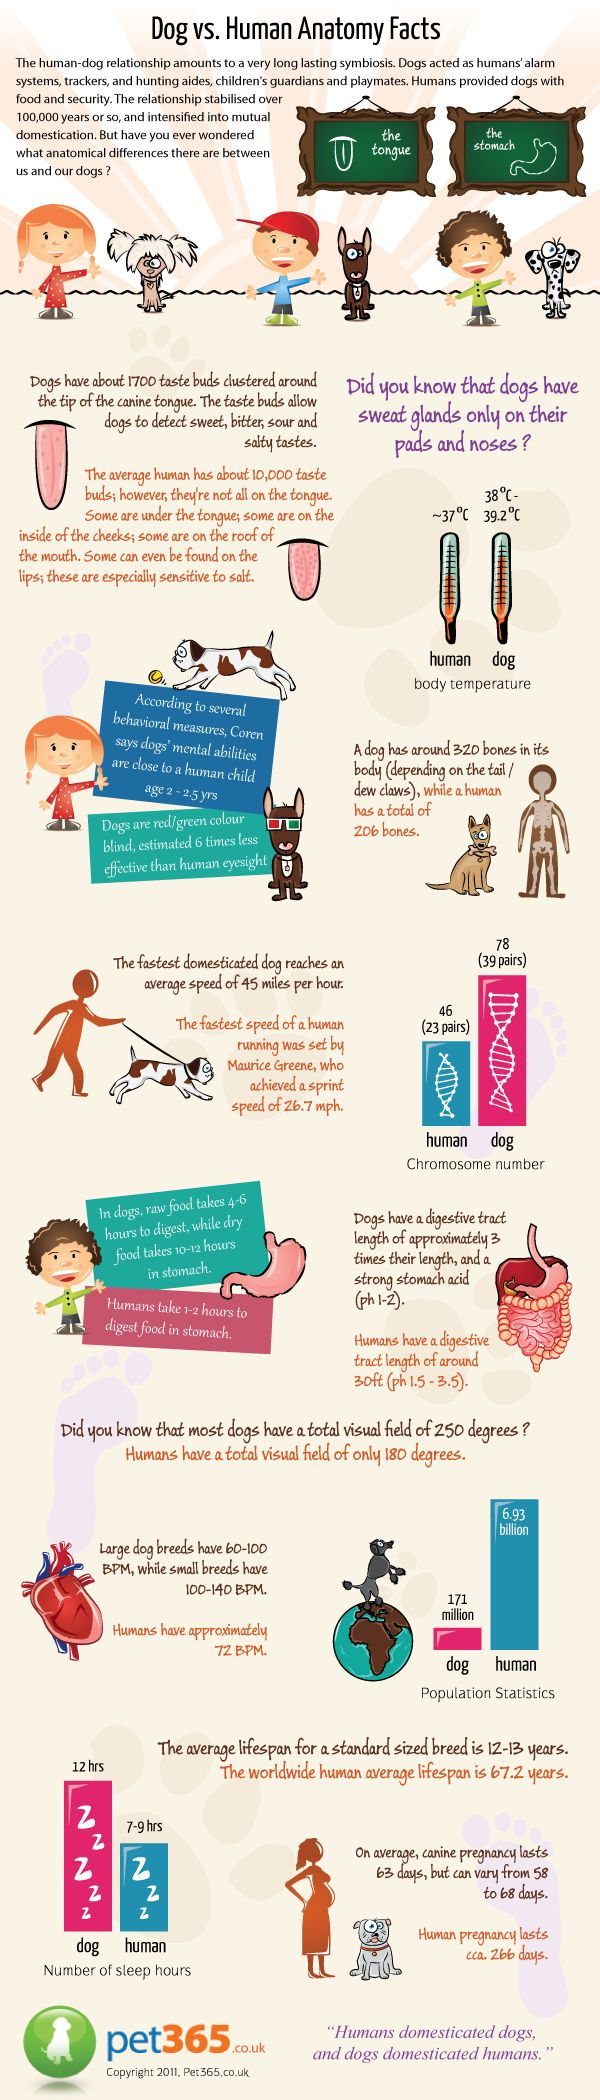 111 best Pet FACTS - Infographics images on Pinterest | Doggies ...